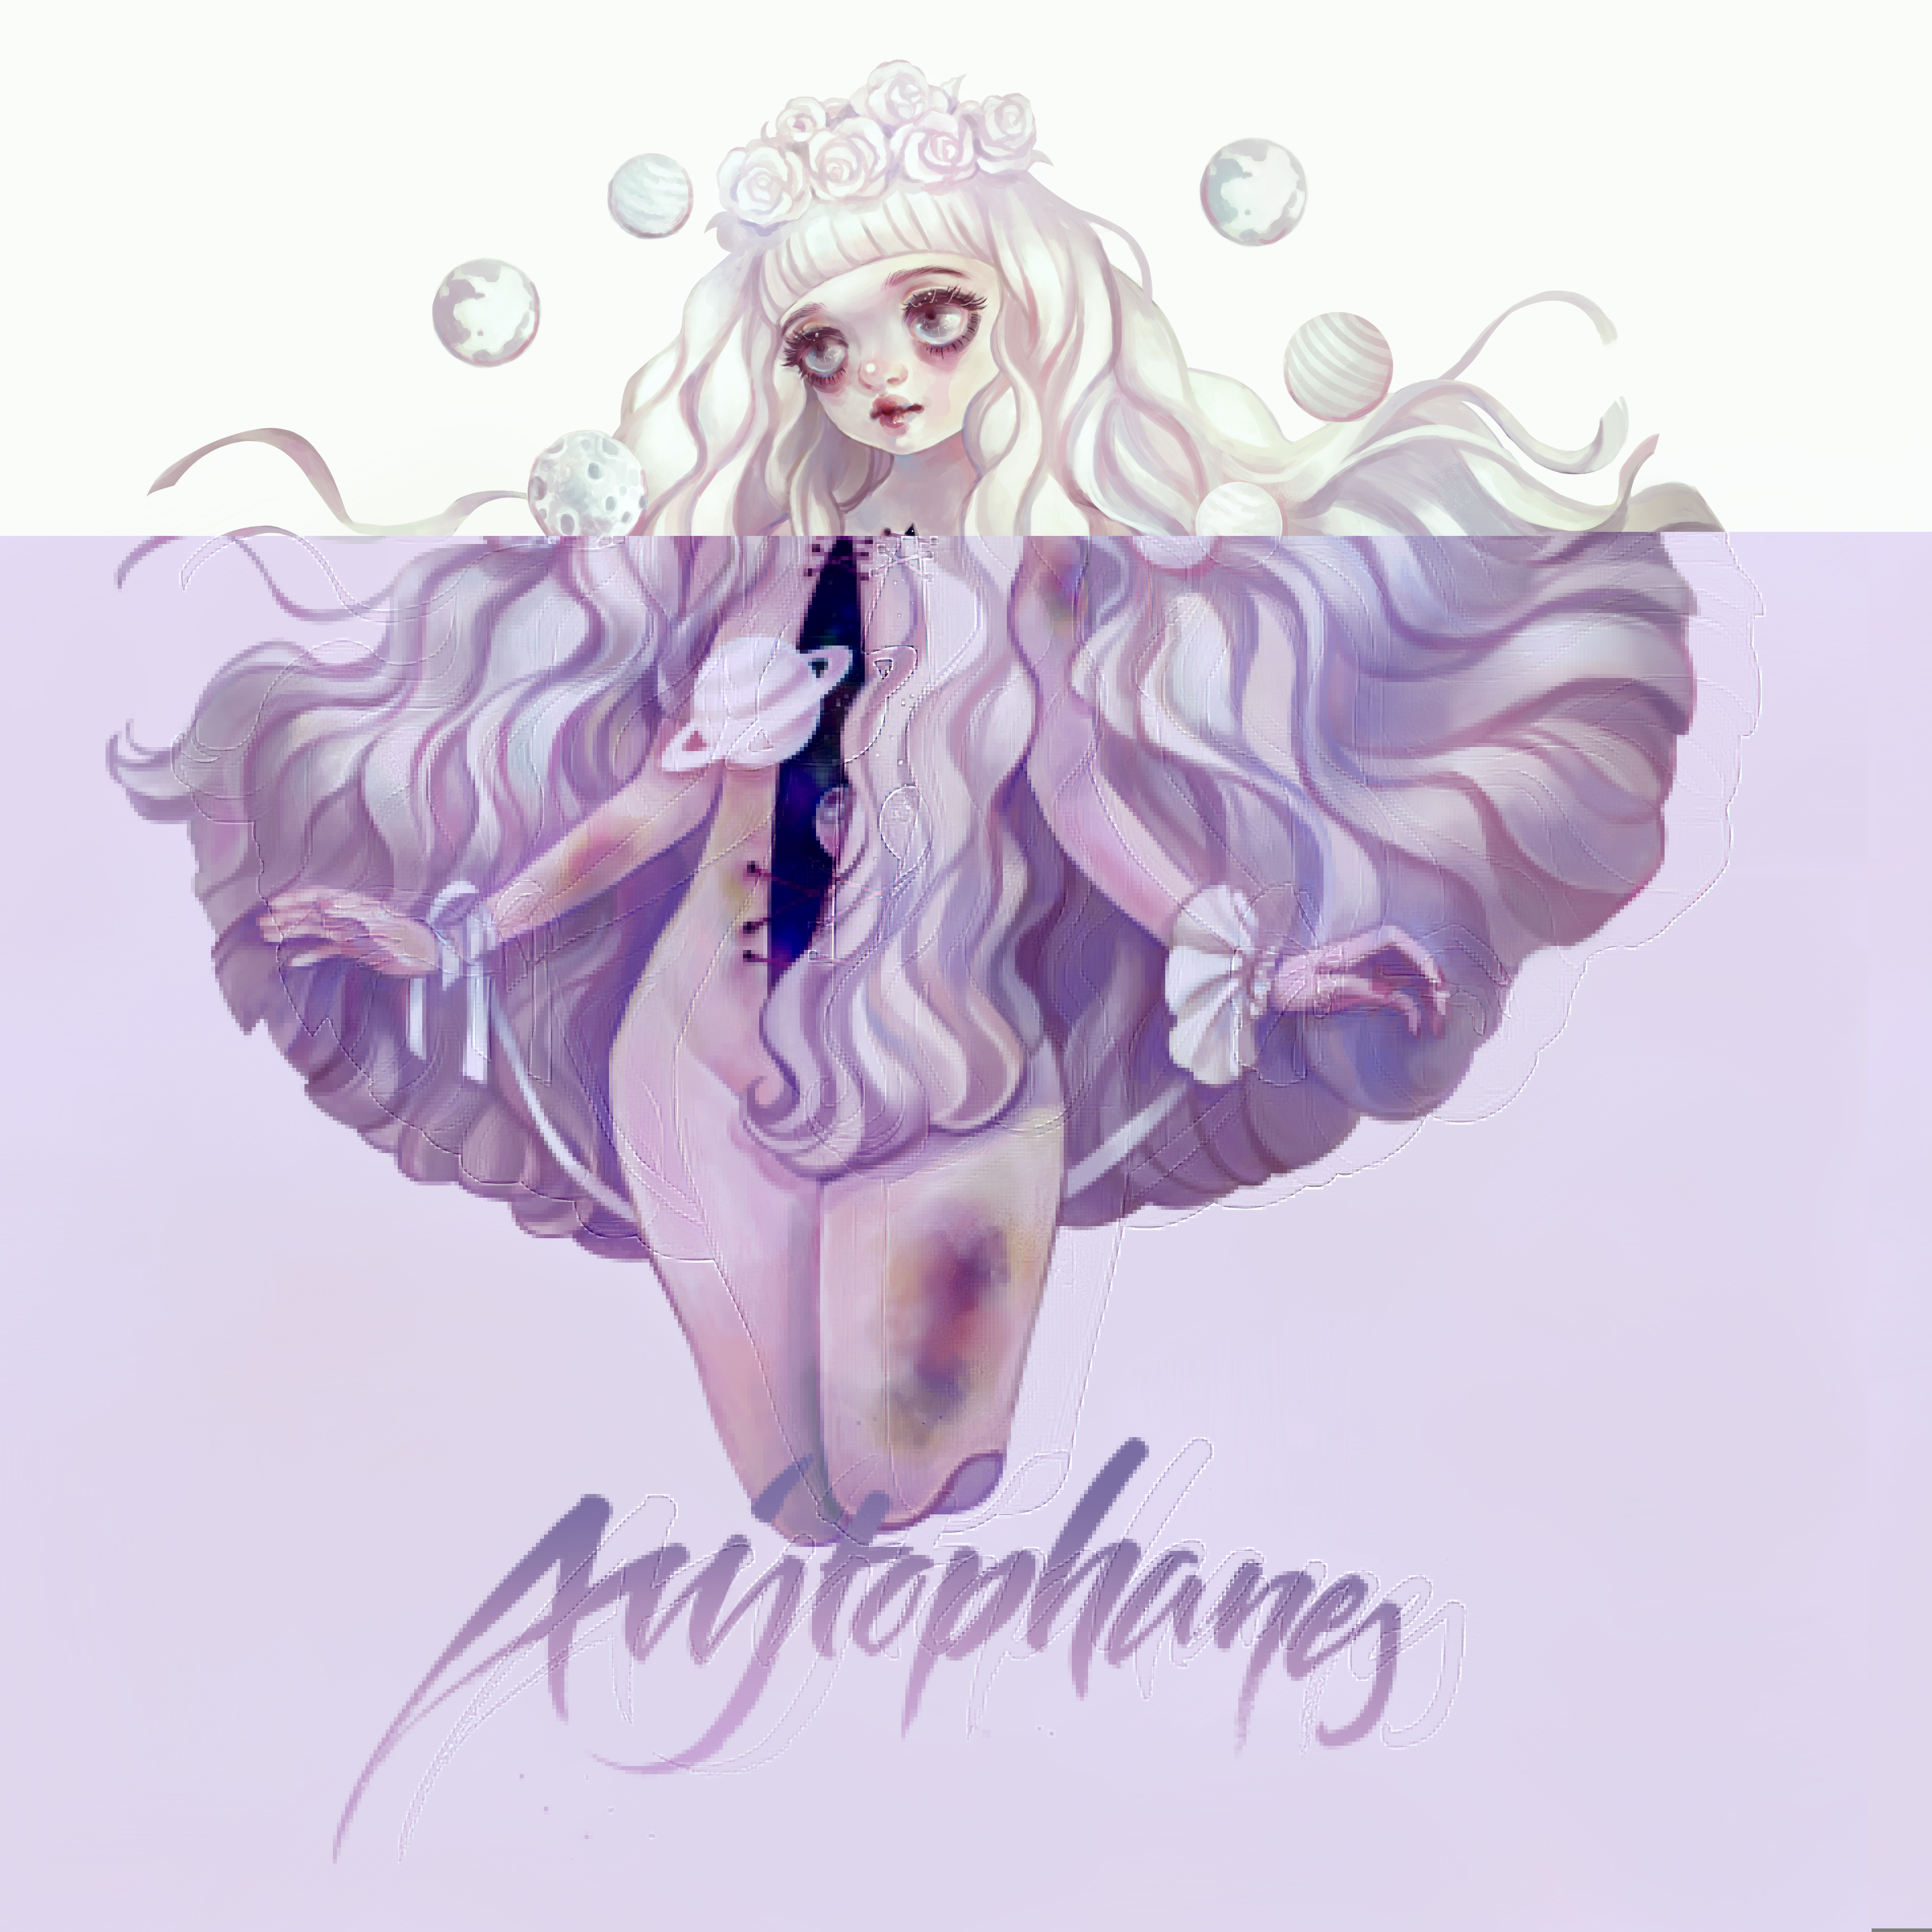 Aristophanes album art